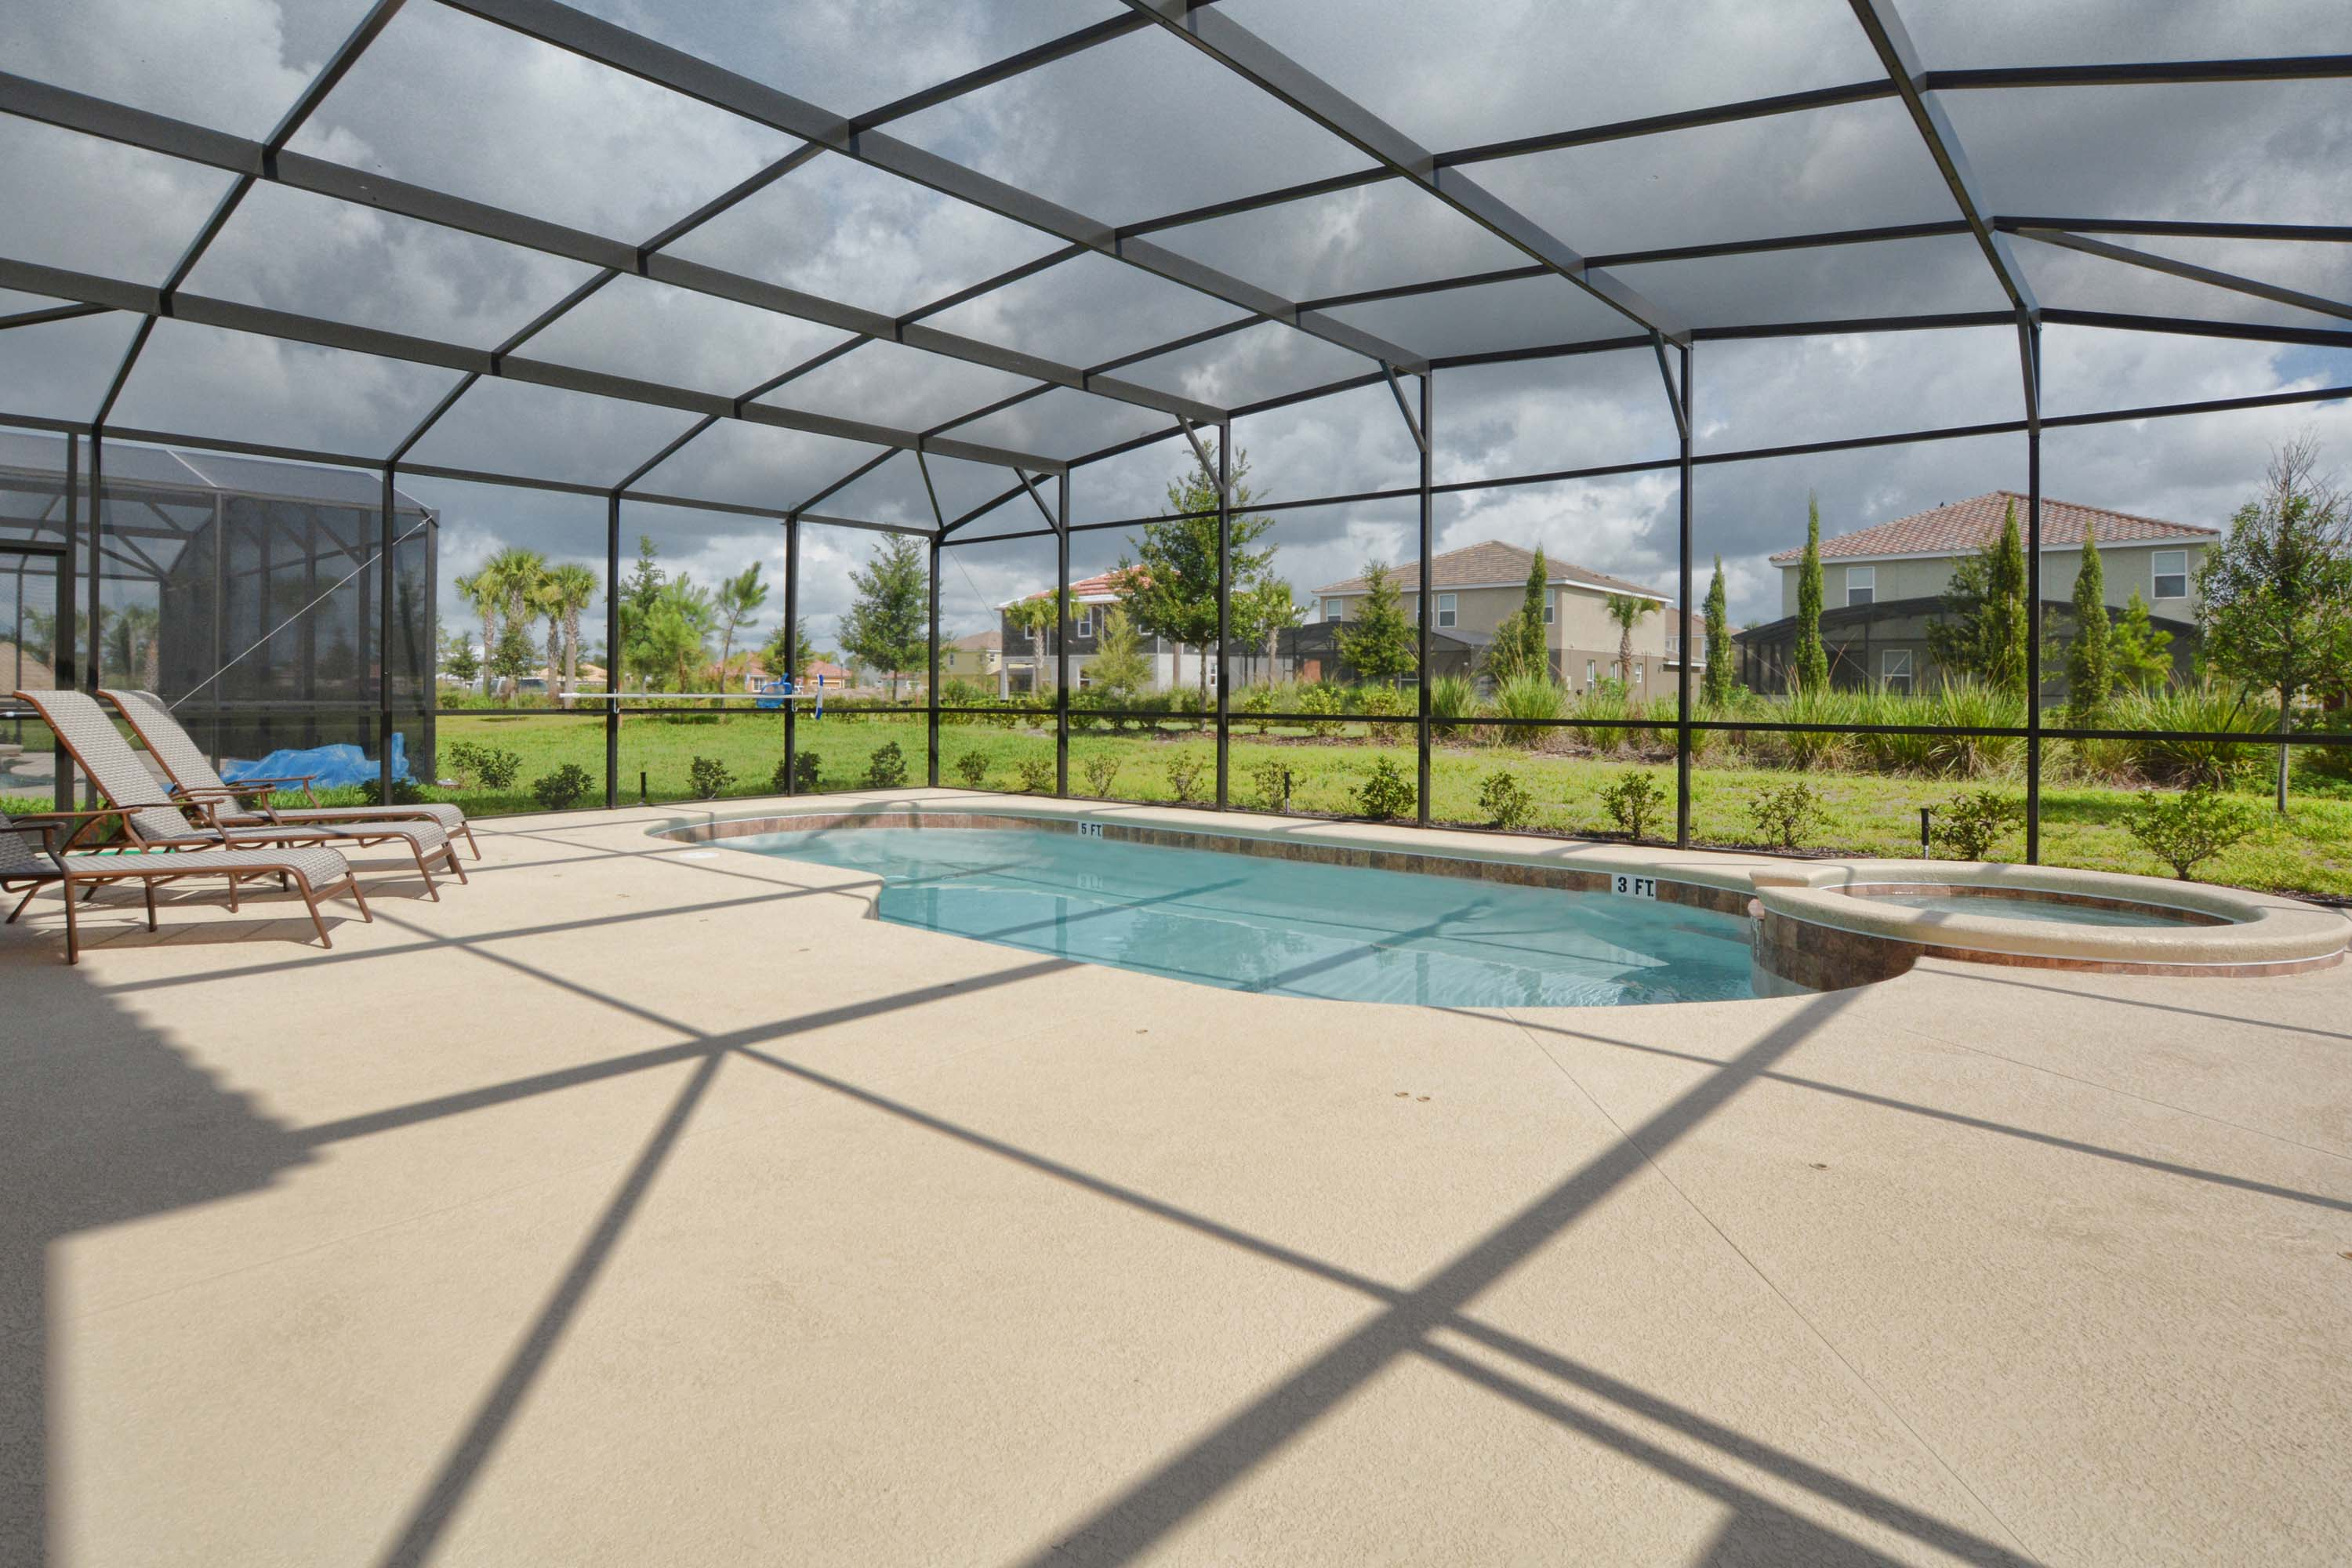 Private Pool and Pool Deck - Night Breeze - 6 Bedroom Solterra Resort Vacation Home - Home4uu